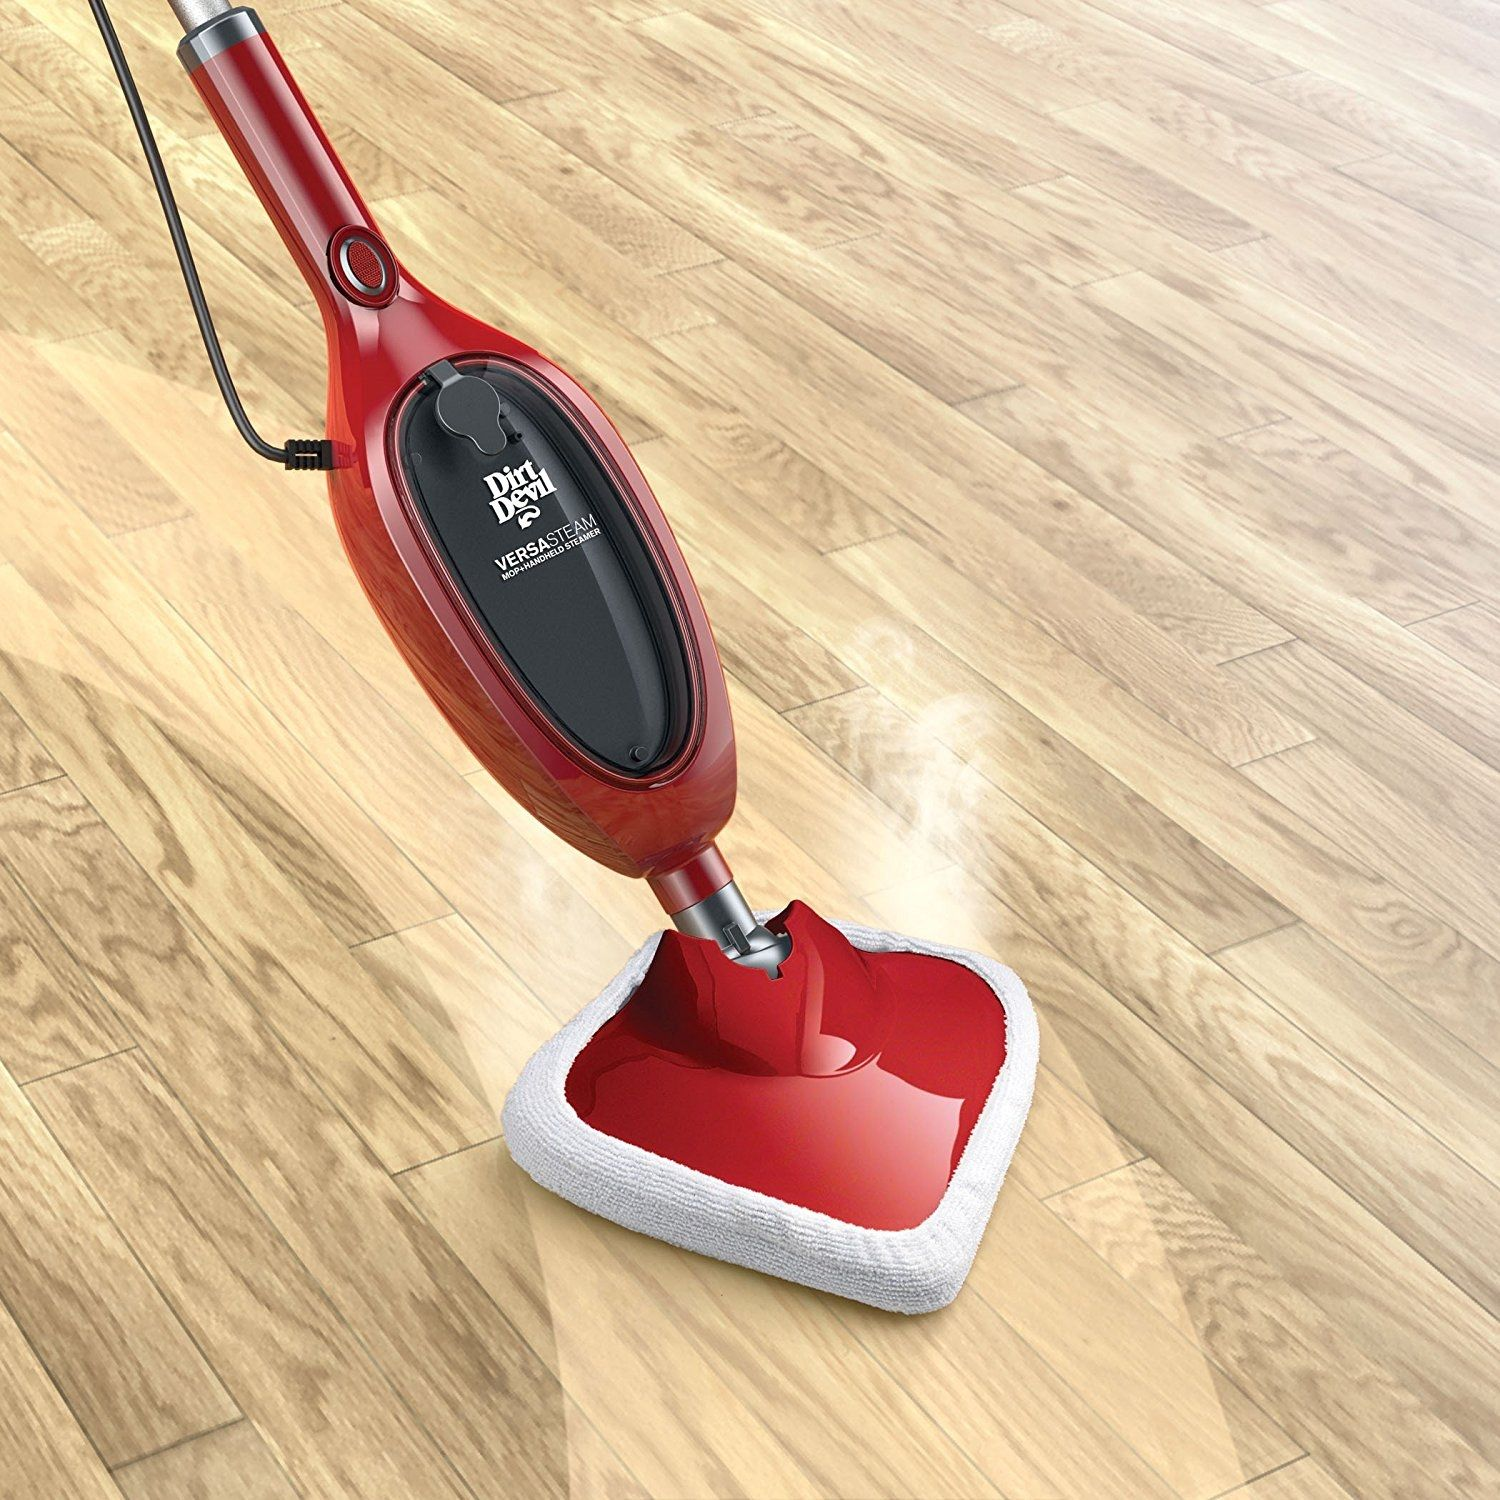 Best steam mop for tile floors consumer reports httpnextsoft21 best steam mop for tile floors consumer reports dailygadgetfo Choice Image